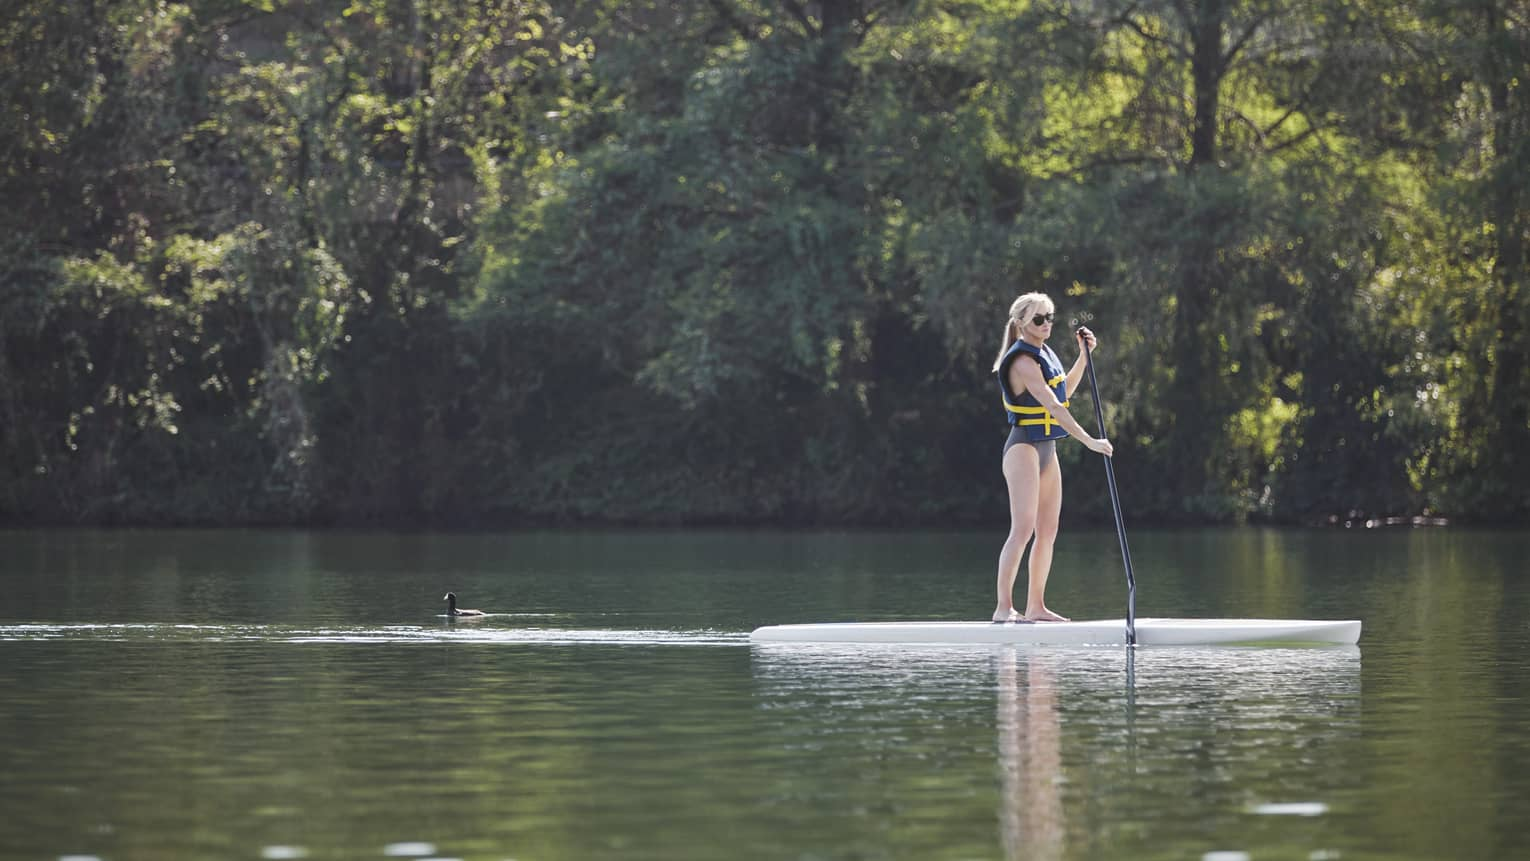 A woman paddle boards across serene waters